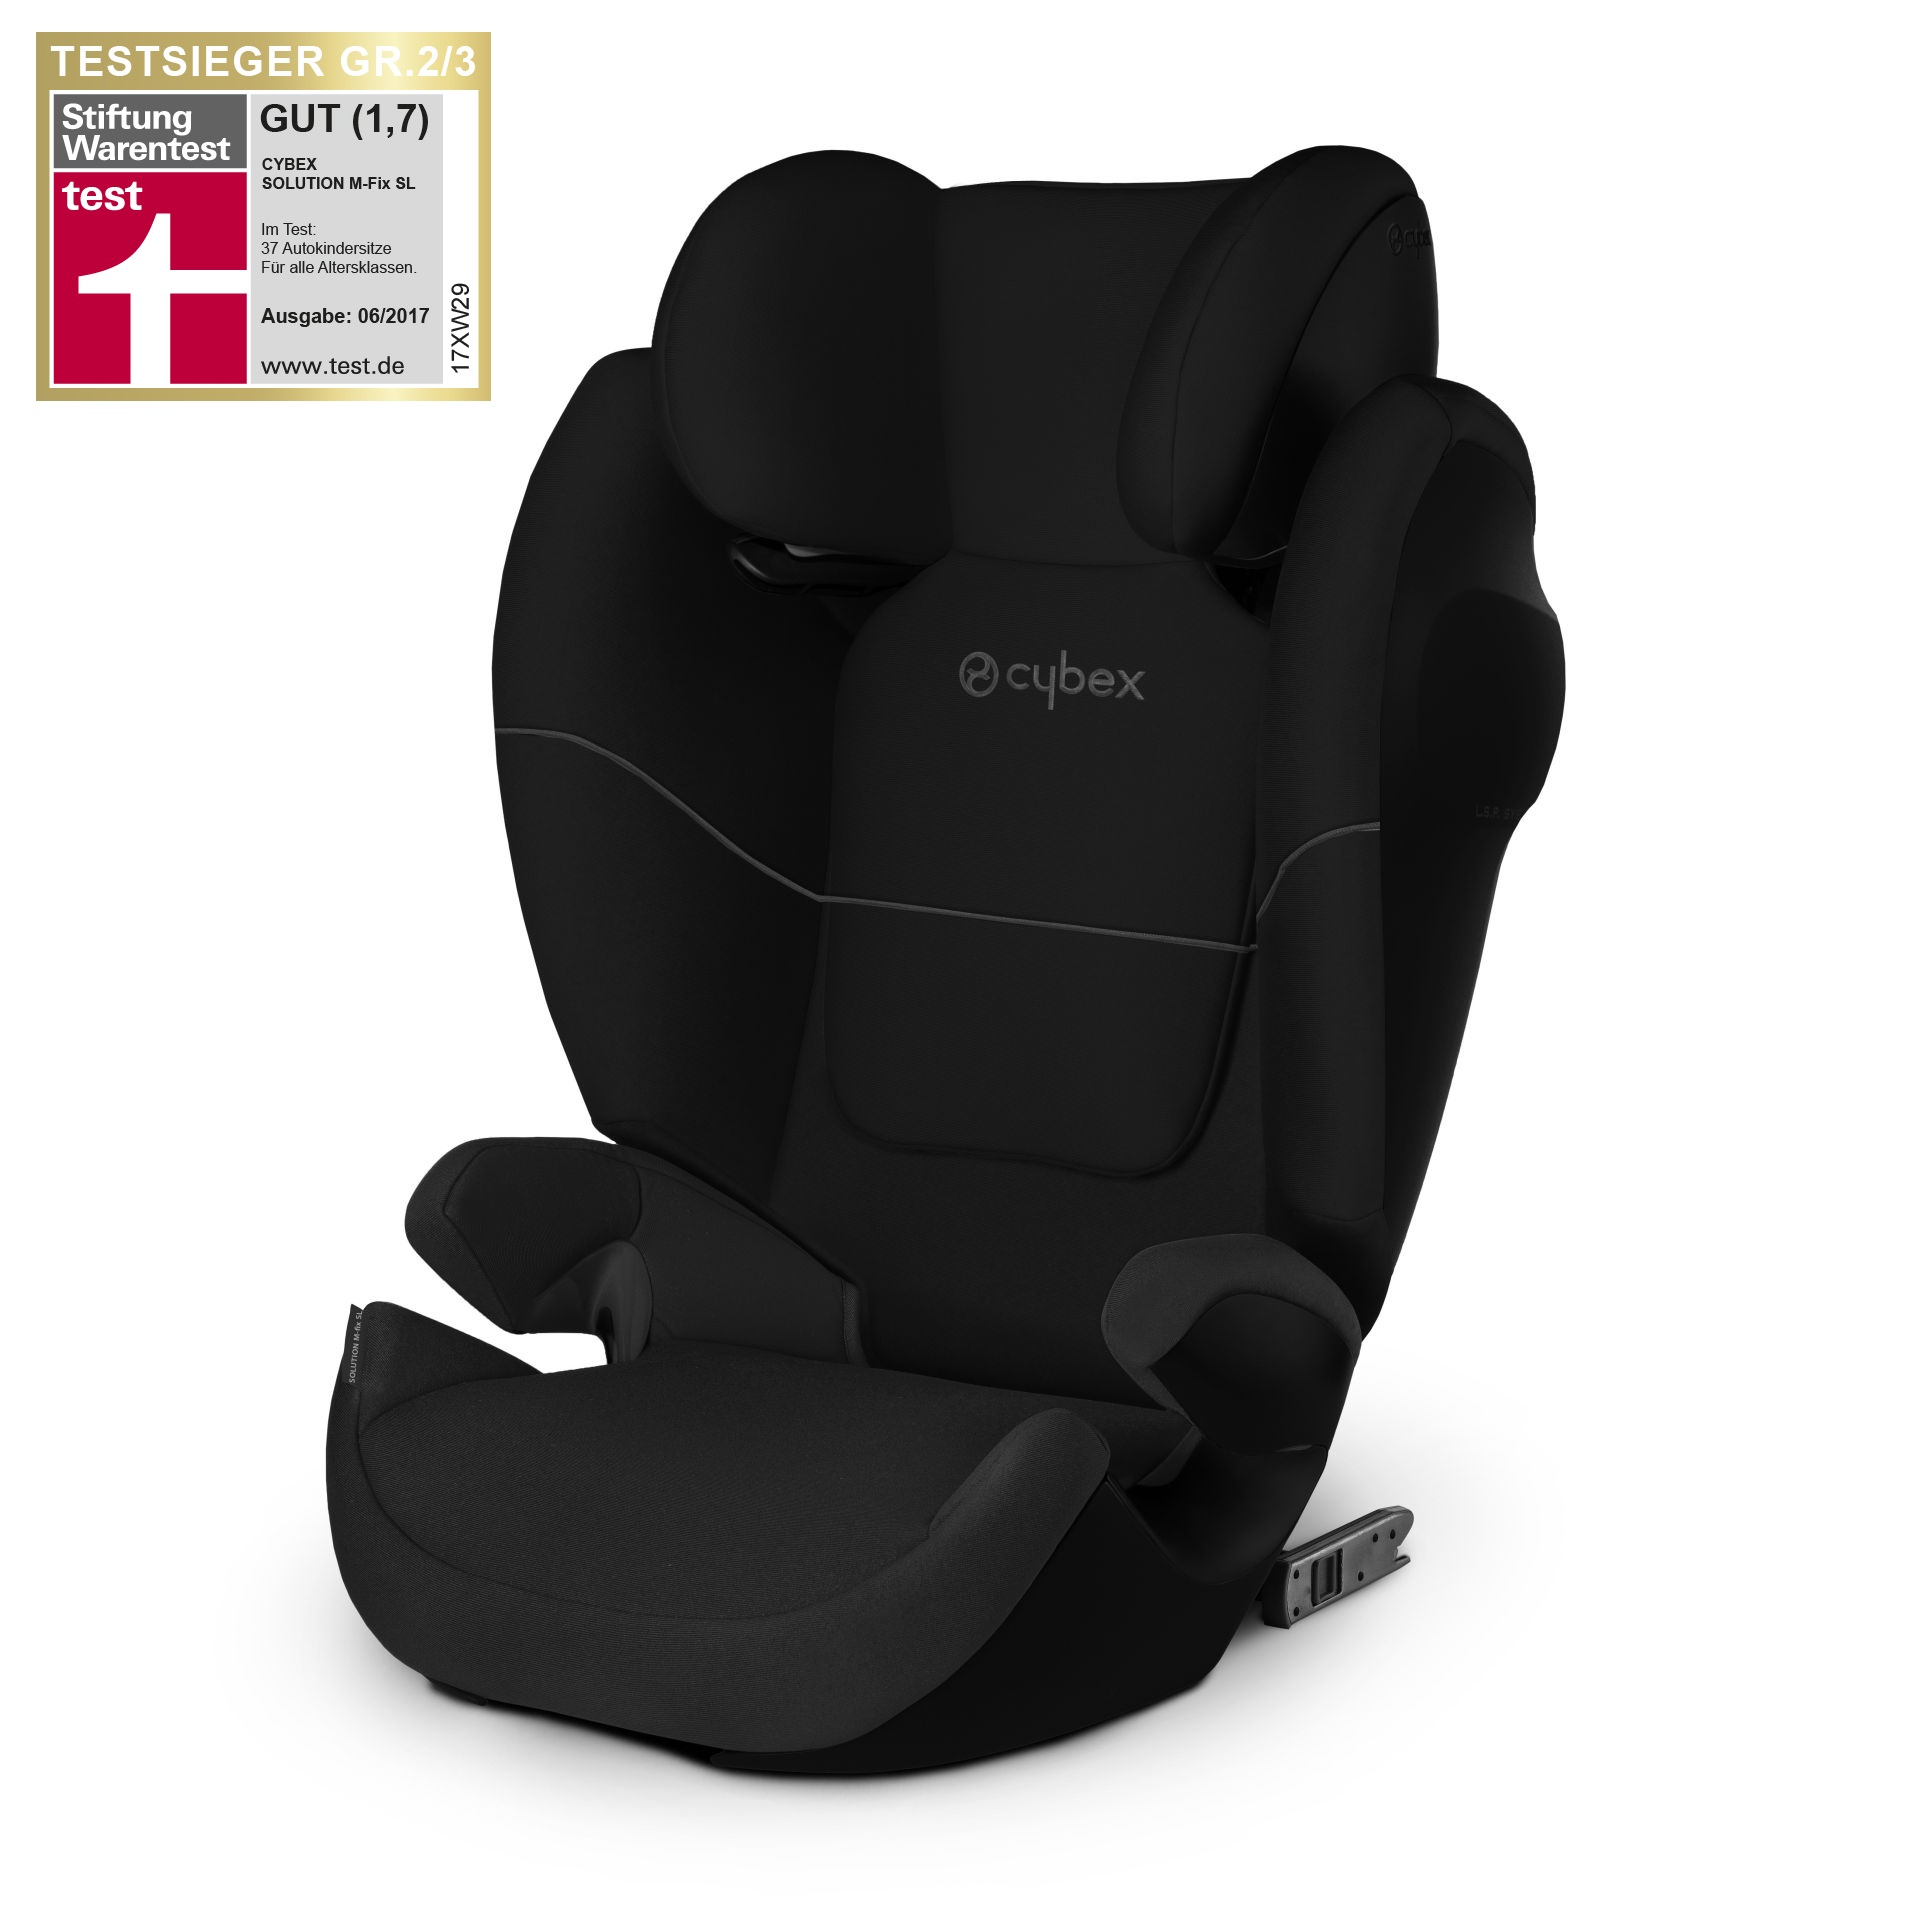 cybex child car seat solution m fix sl buy at kidsroom. Black Bedroom Furniture Sets. Home Design Ideas